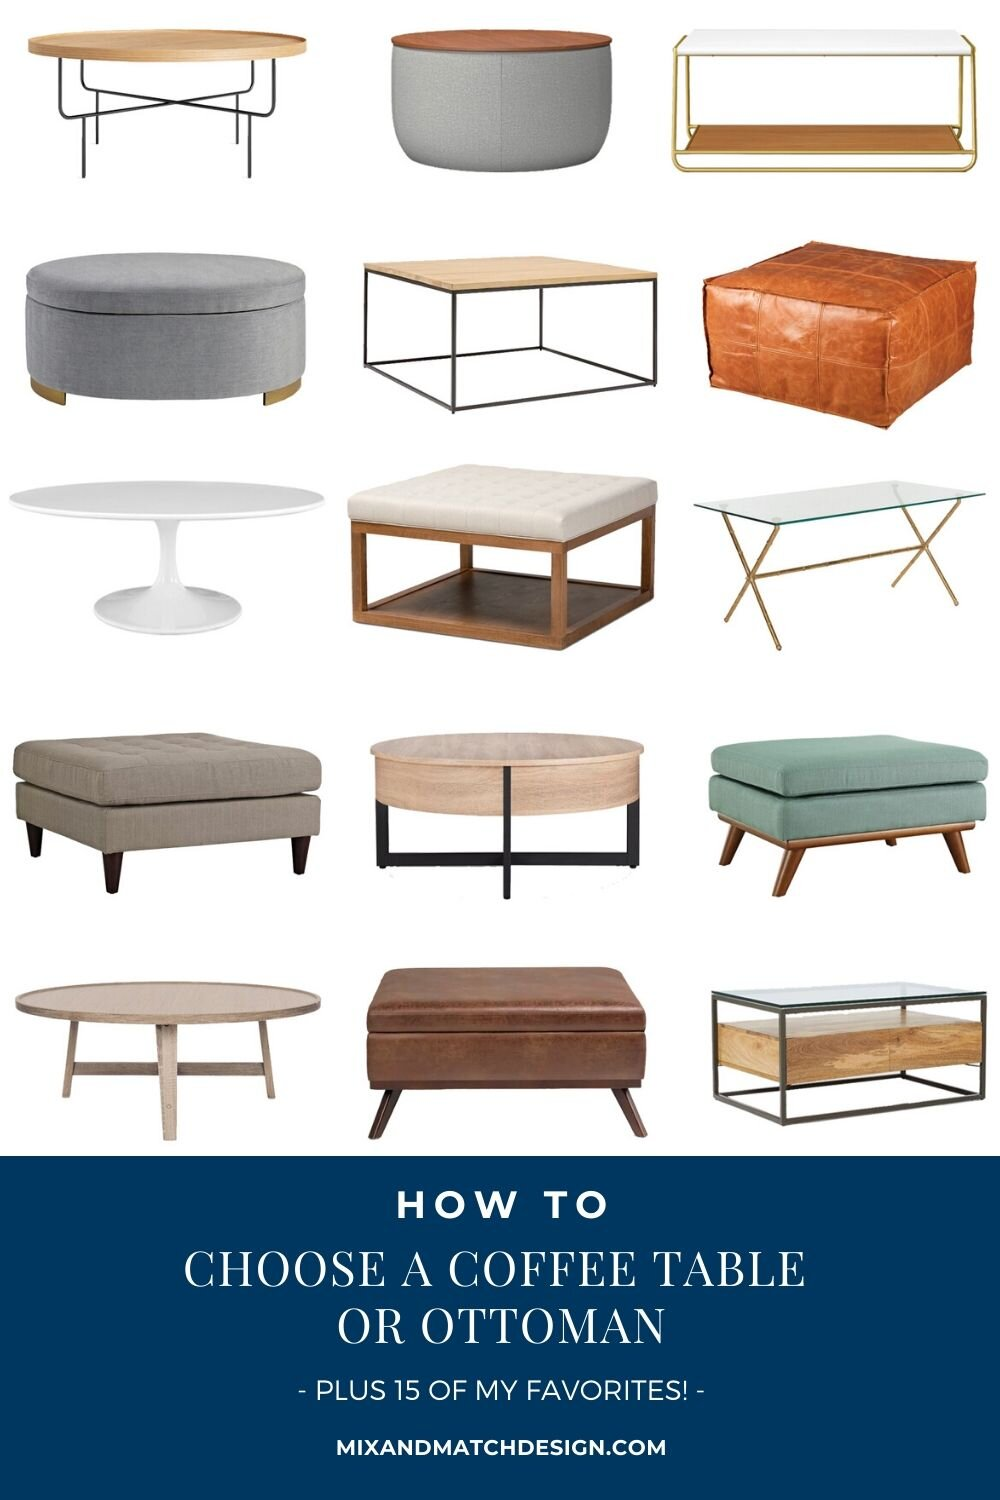 how to choose a coffee table or ottoman